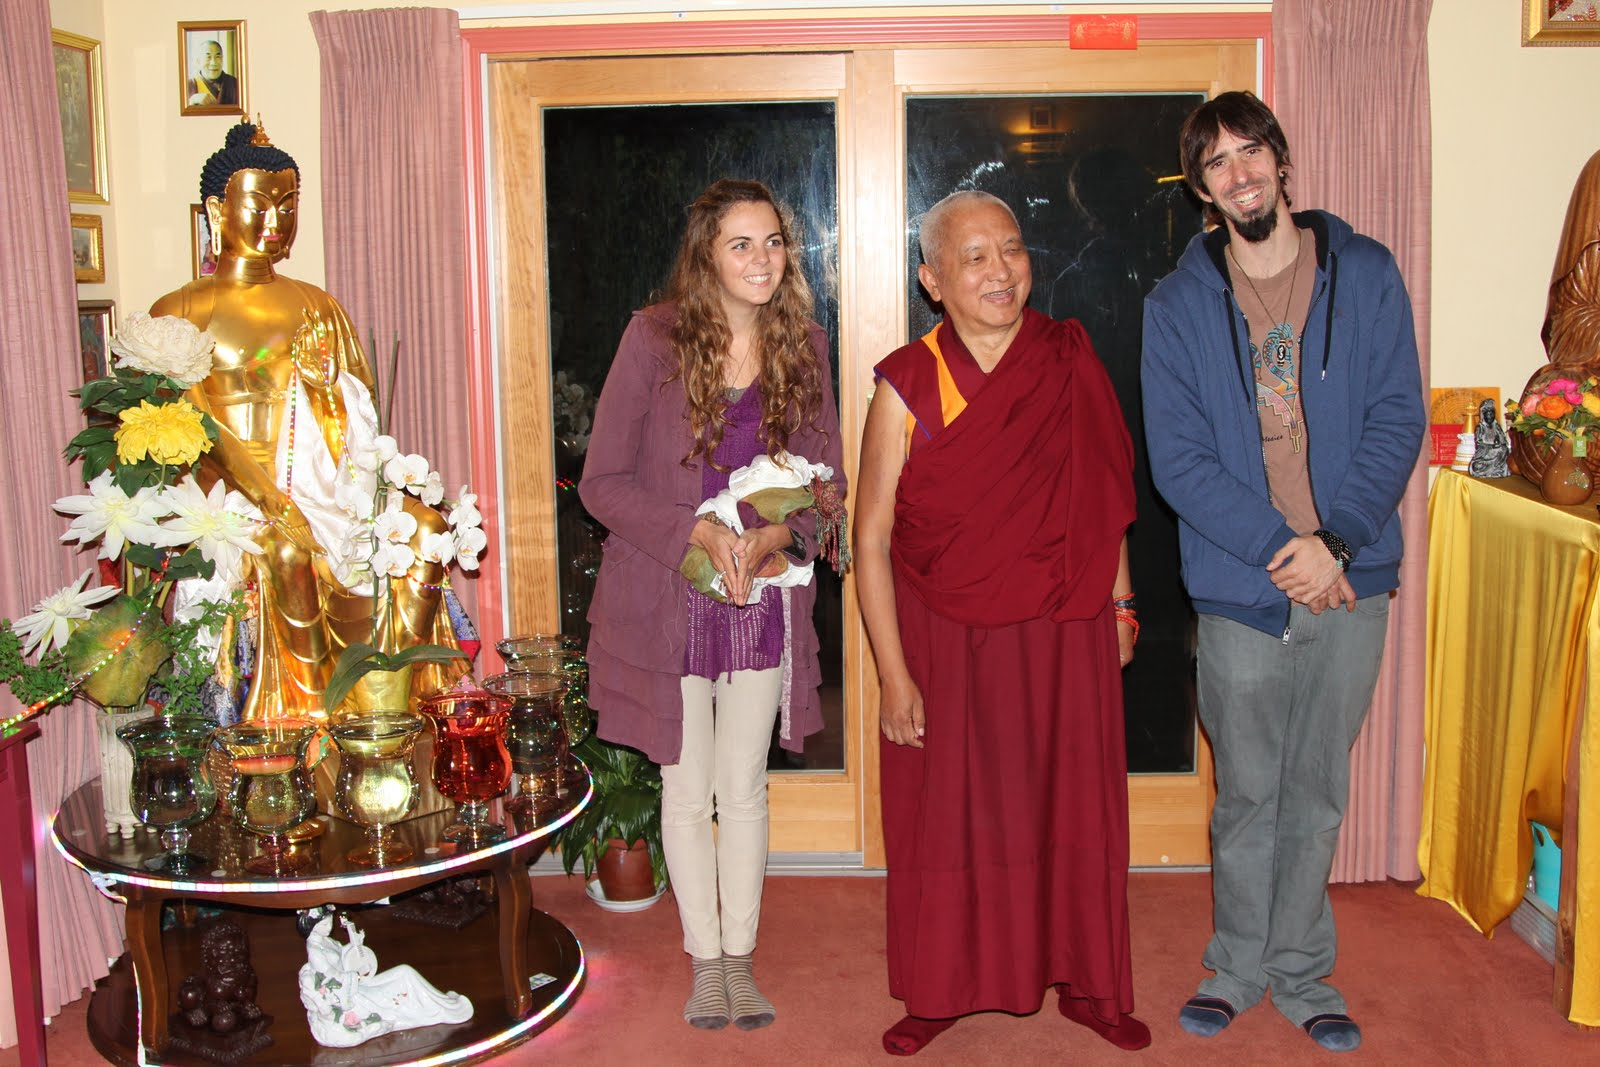 Tenzin Ösel and his partner, Mai, visiting Rinpoche at Aptos House, California. October, 2013.